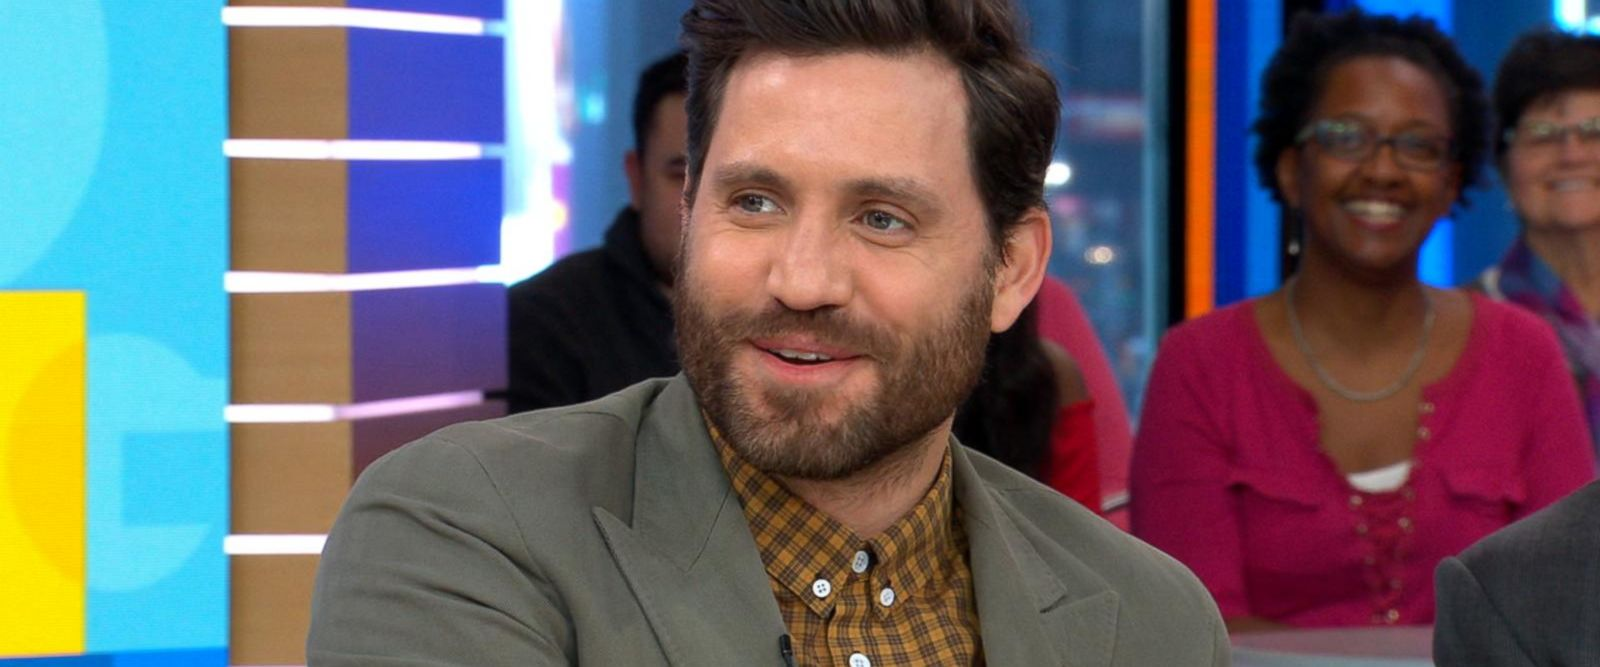 VIDEO: Edgar Ramirez discusses how he transformed into Gianni Versace live on 'GMA'